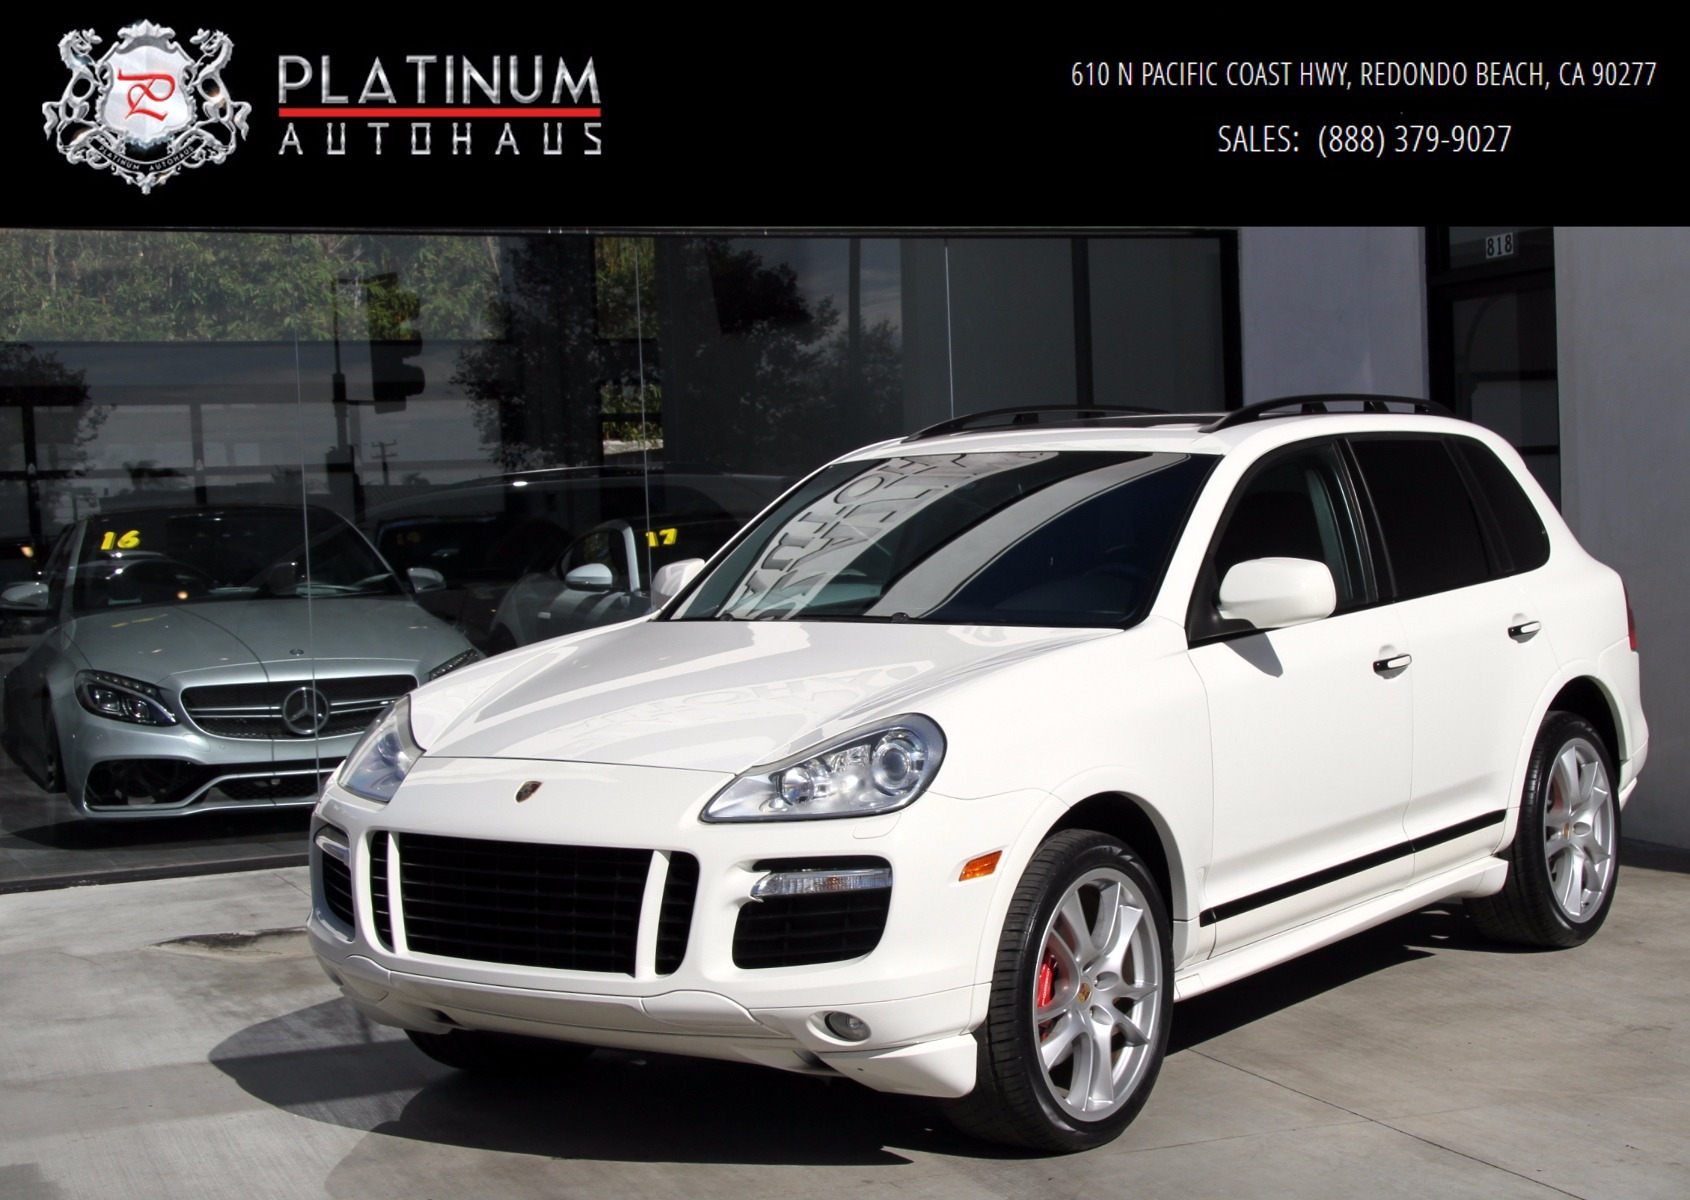 2009 porsche cayenne gts stock 6024 for sale near redondo beach ca ca porsche dealer. Black Bedroom Furniture Sets. Home Design Ideas